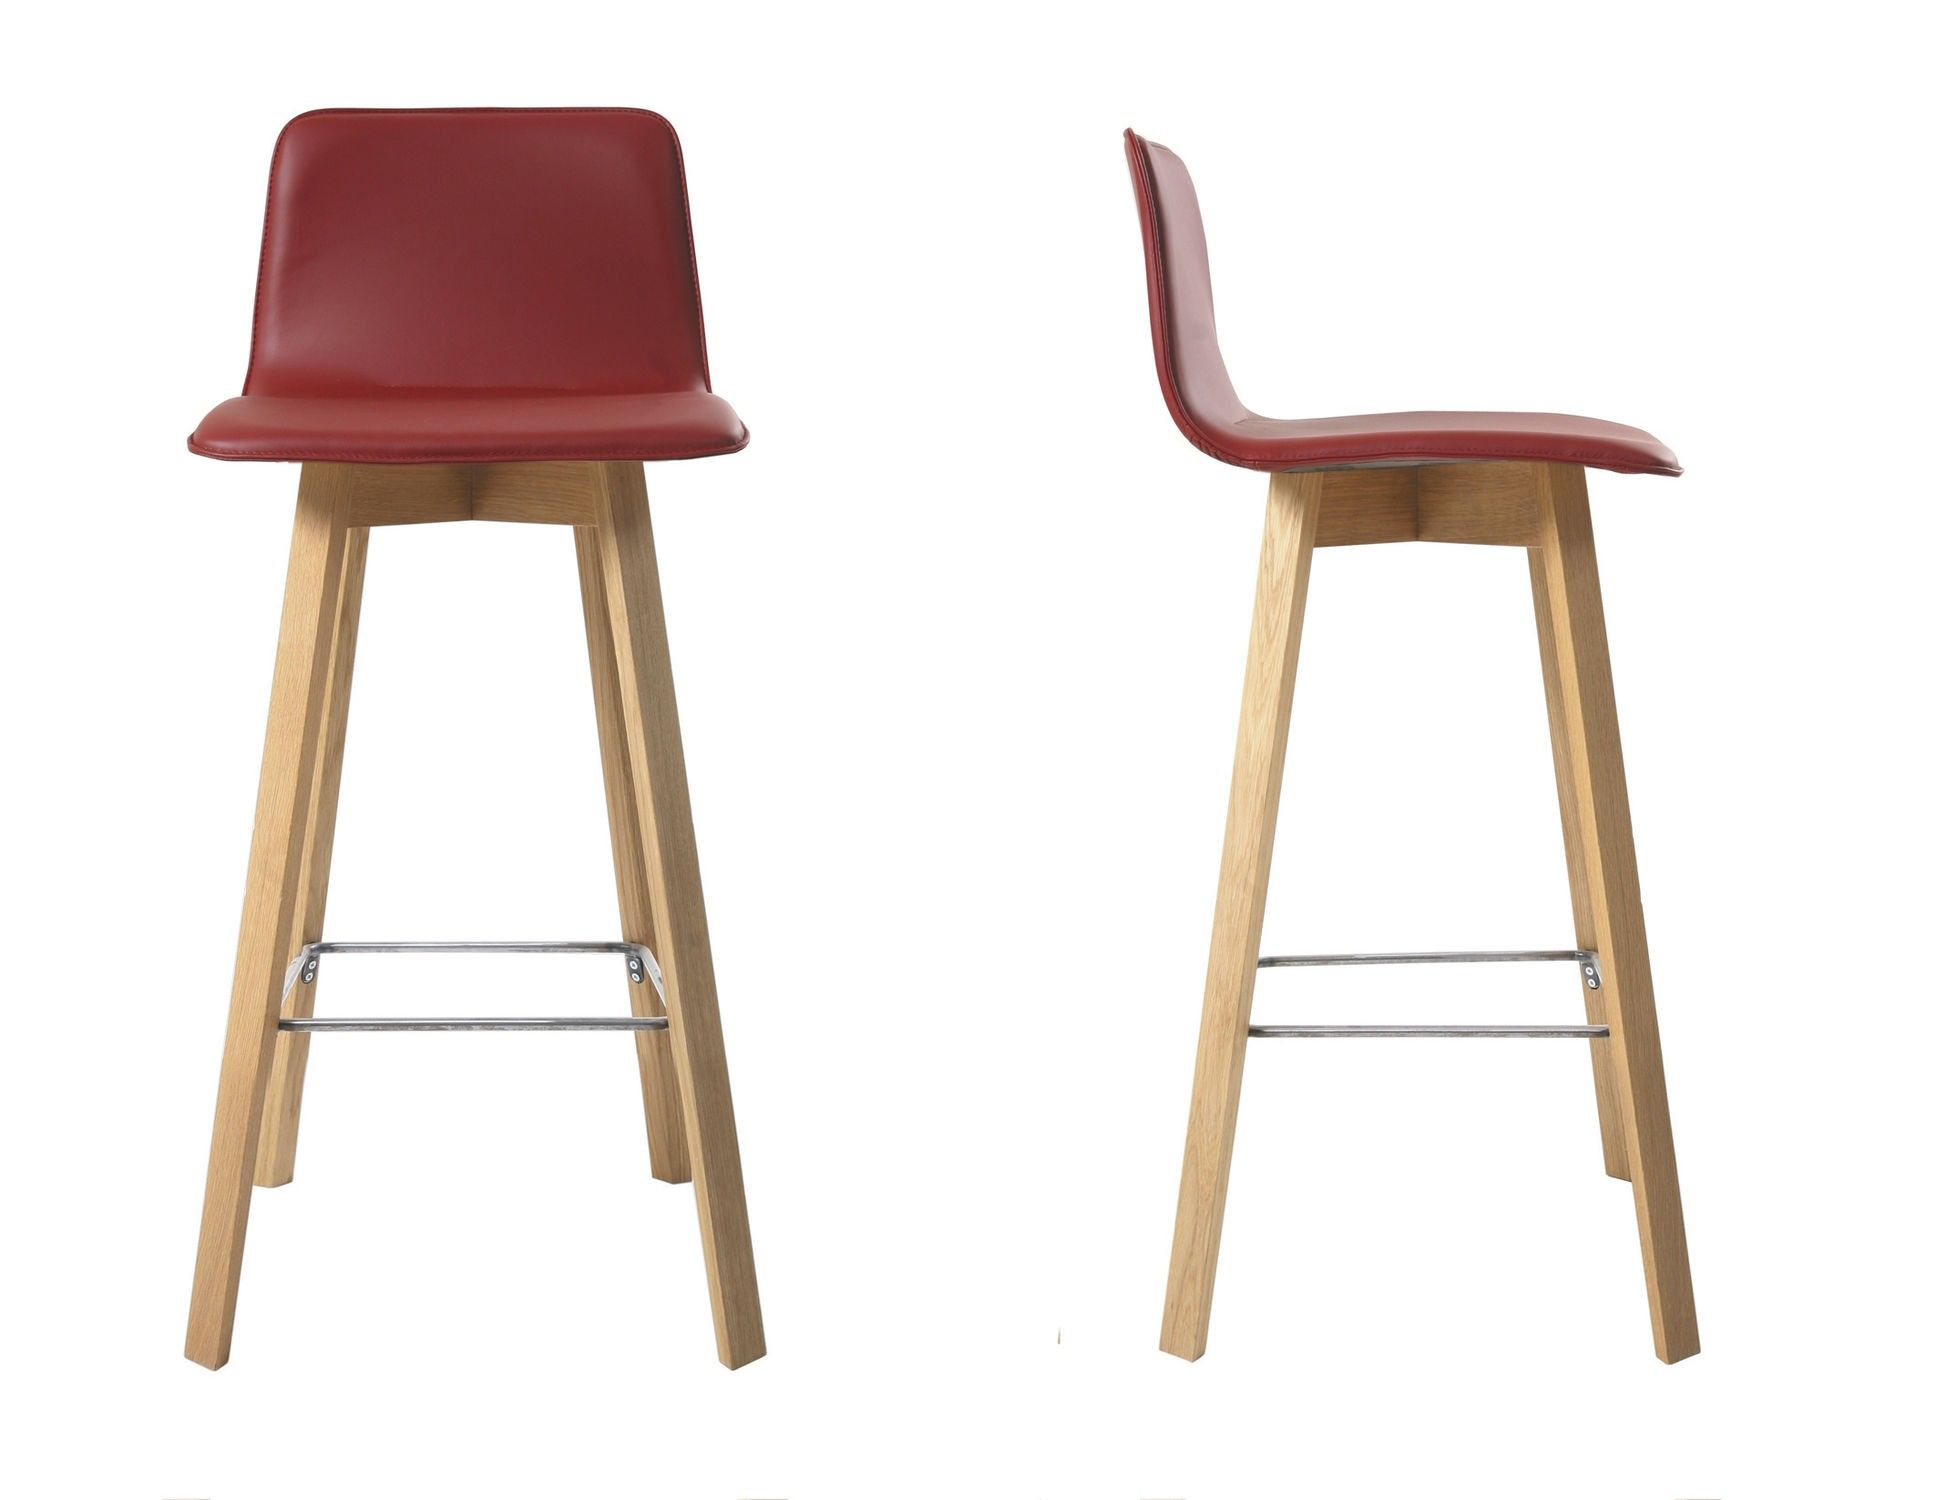 Colorful Bar Stools With Backs Kitchen Stools With Backs Contemporary Wooden Upholstered